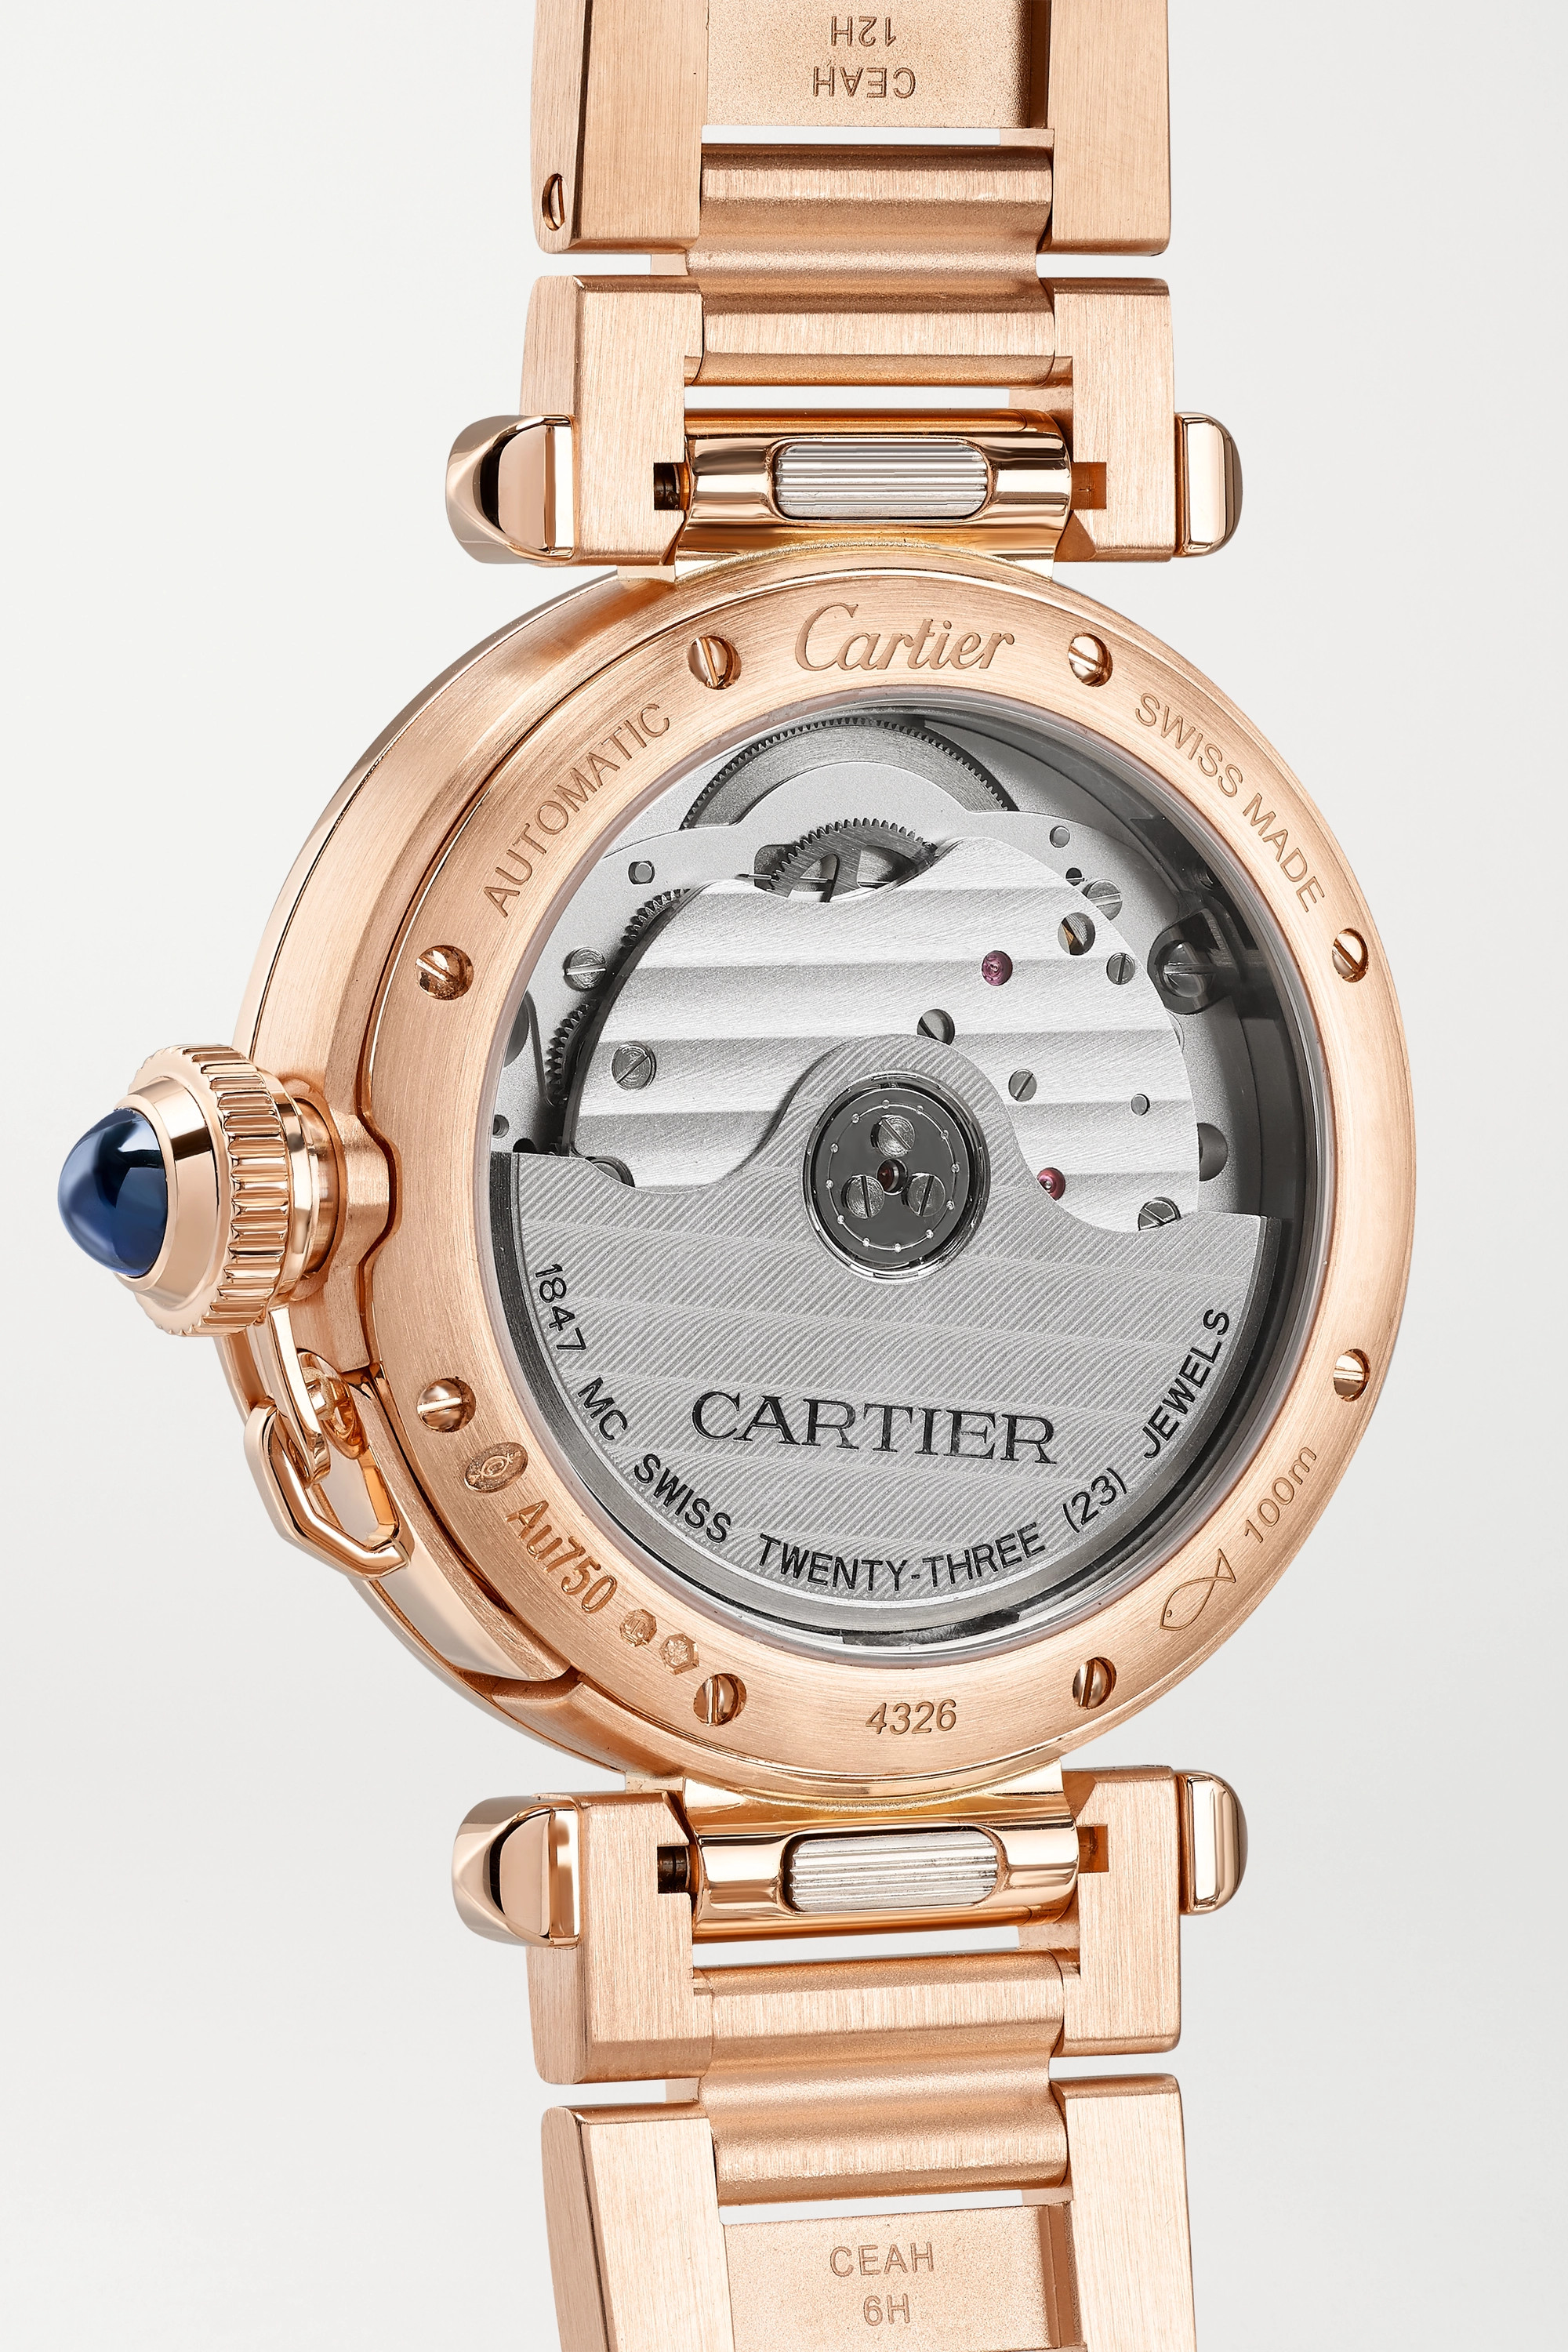 Cartier Montre en or rose 18 carats et diamants à bracelet en alligator automatique Pasha de Cartier 35 mm